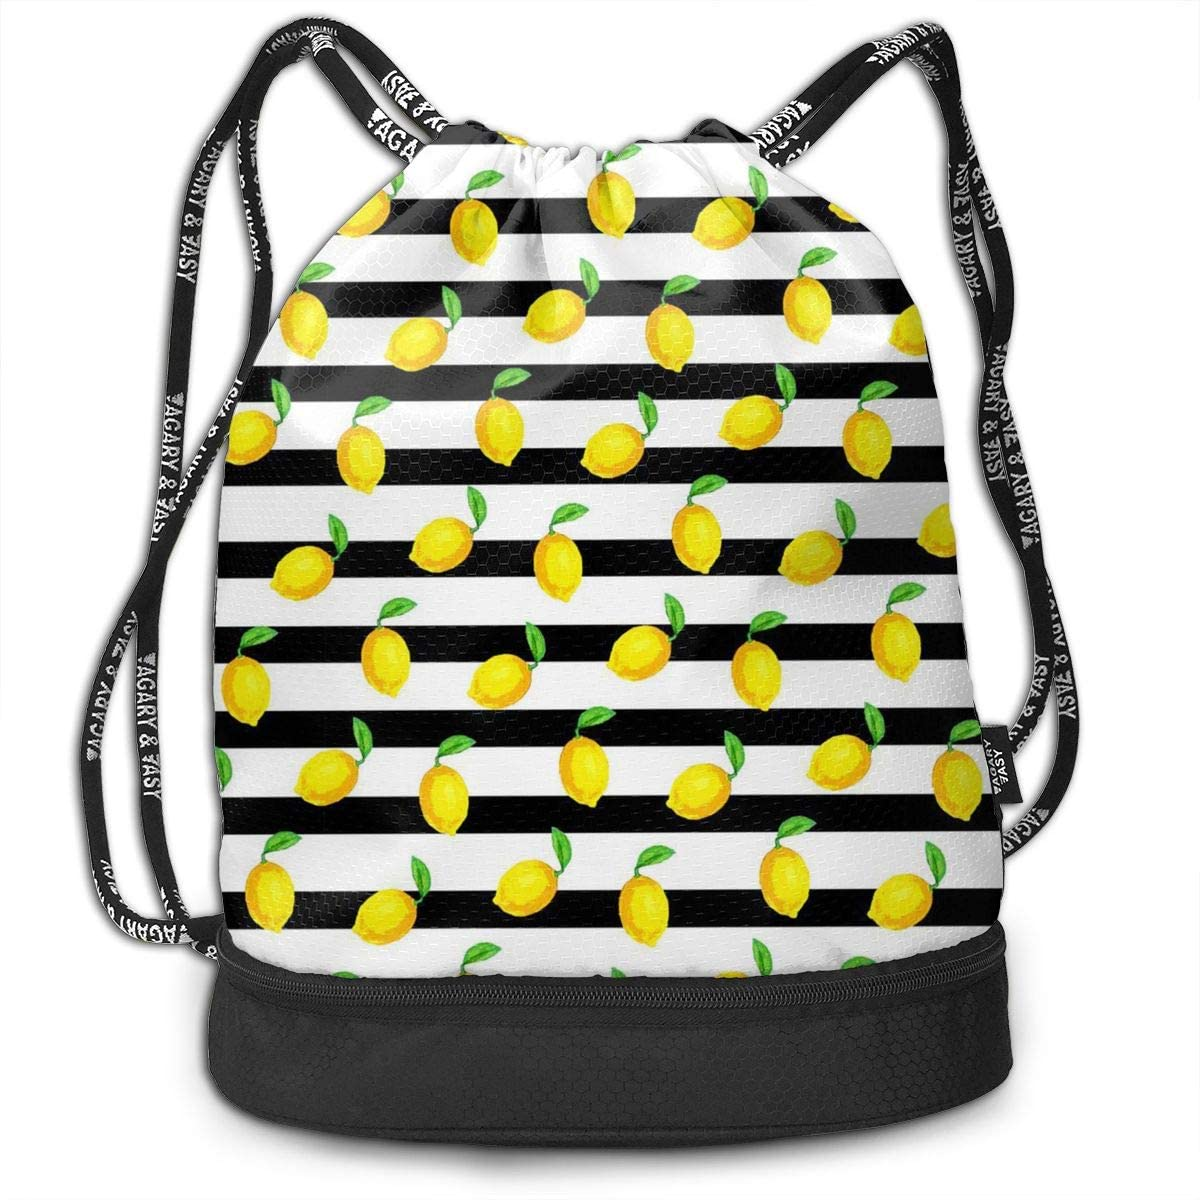 Bundle Backpacks Green Lemon Striped Gym Sack Drawstring Bags Casual Daypack Yoga Bag School Training Pouch